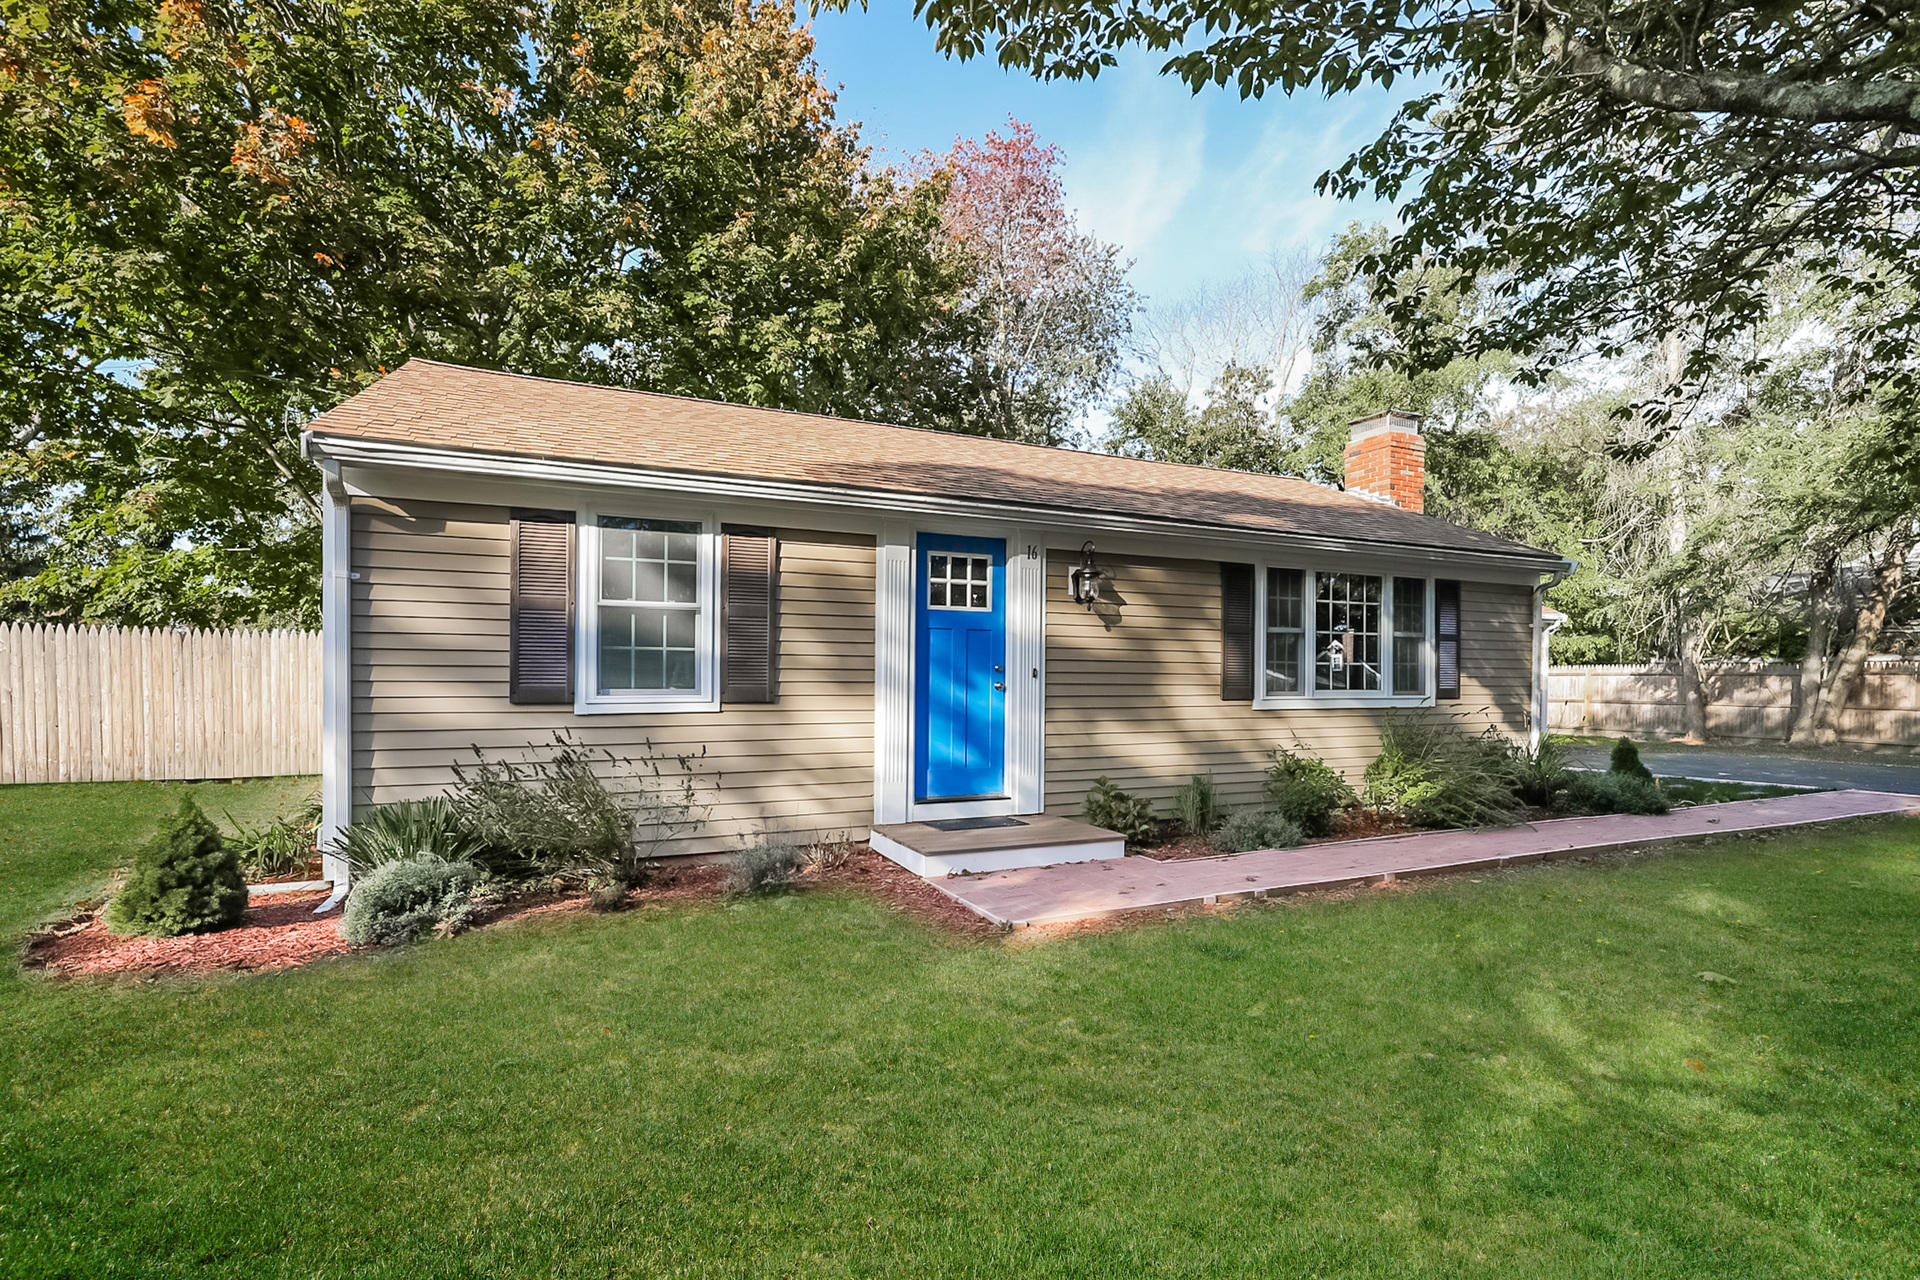 16 Winsome Road, South Yarmouth MA, 02664 details